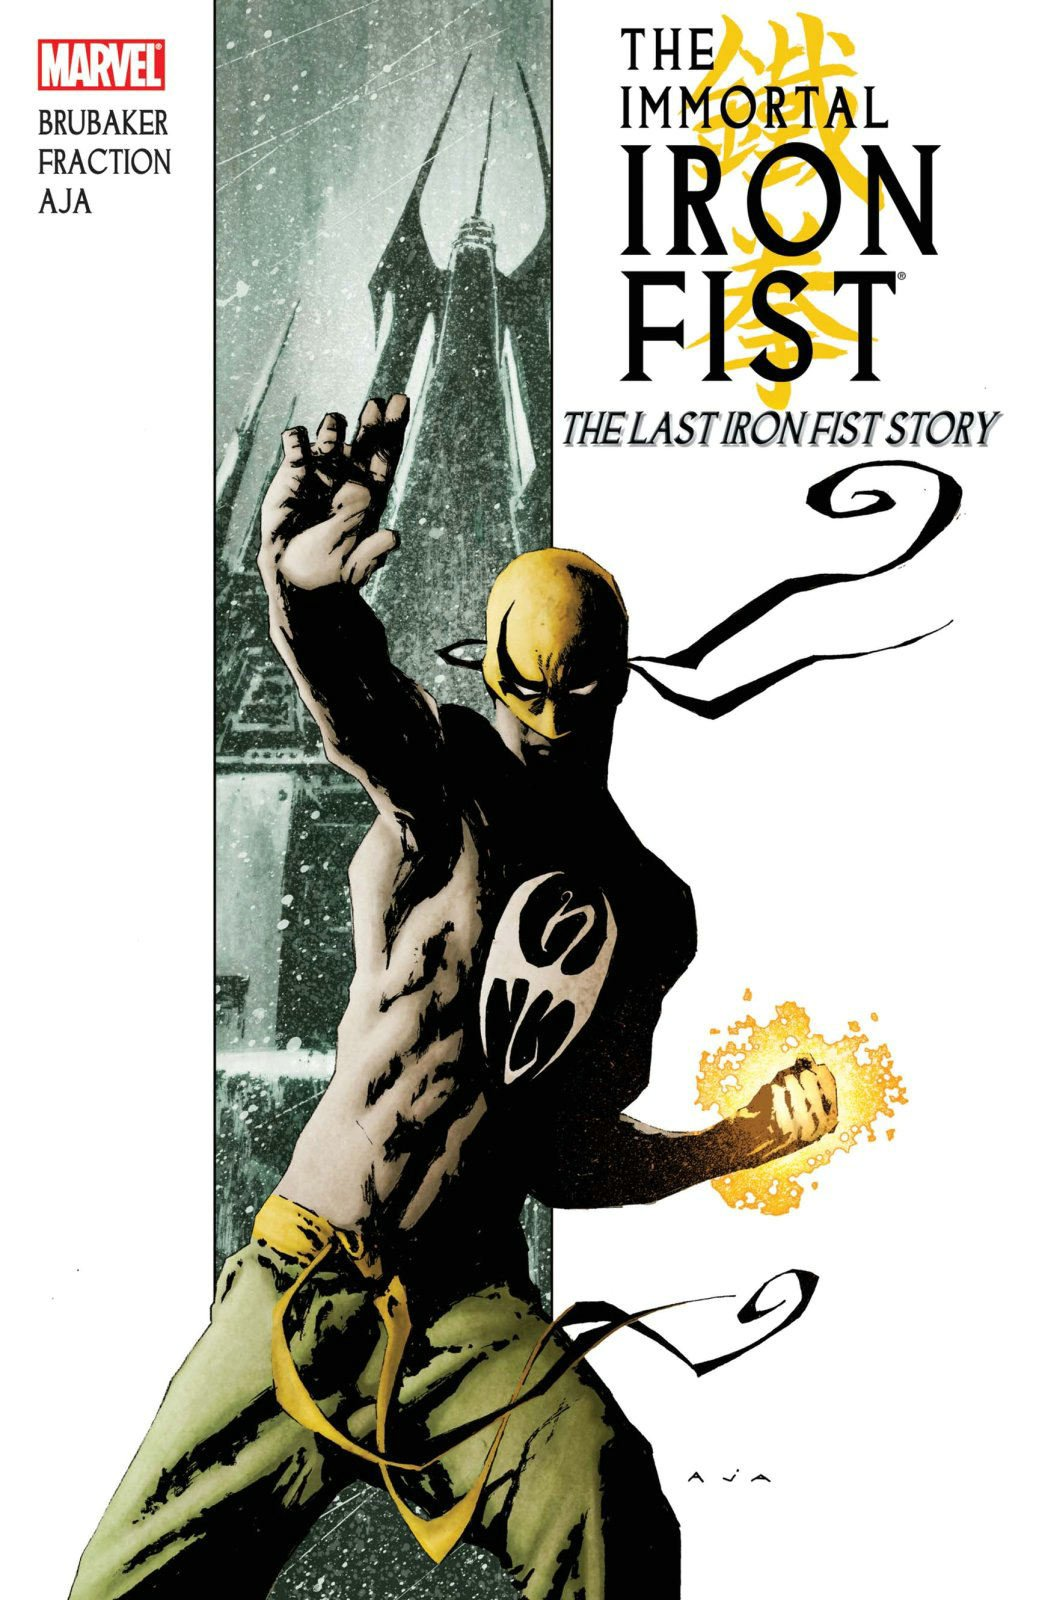 iron fist official jpg 422x640